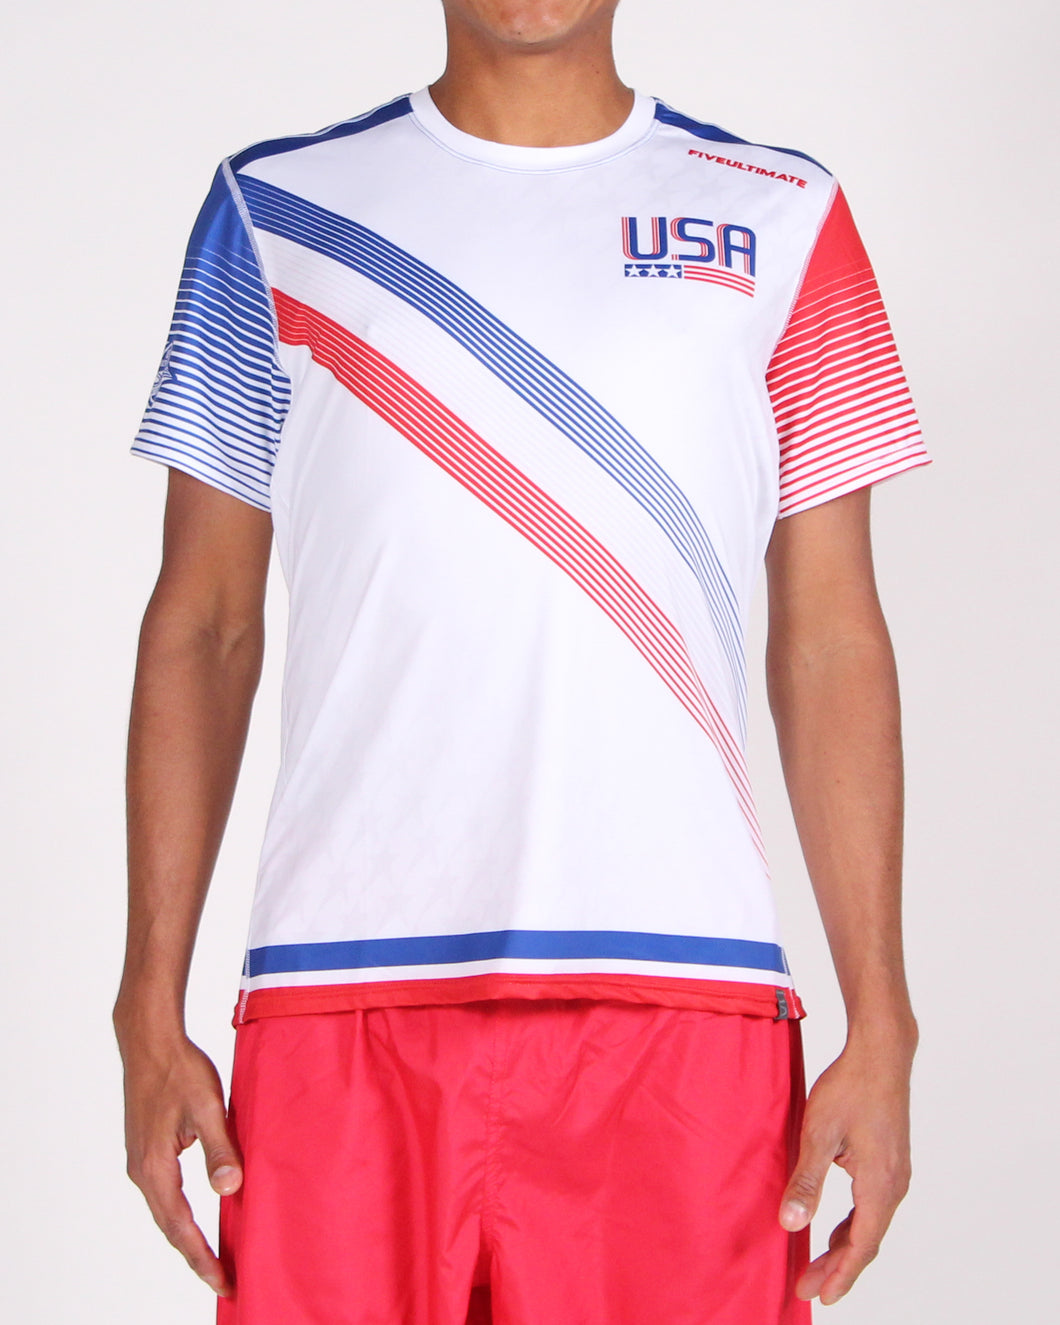 White USNT 2019 Sublimated Electro Jersey